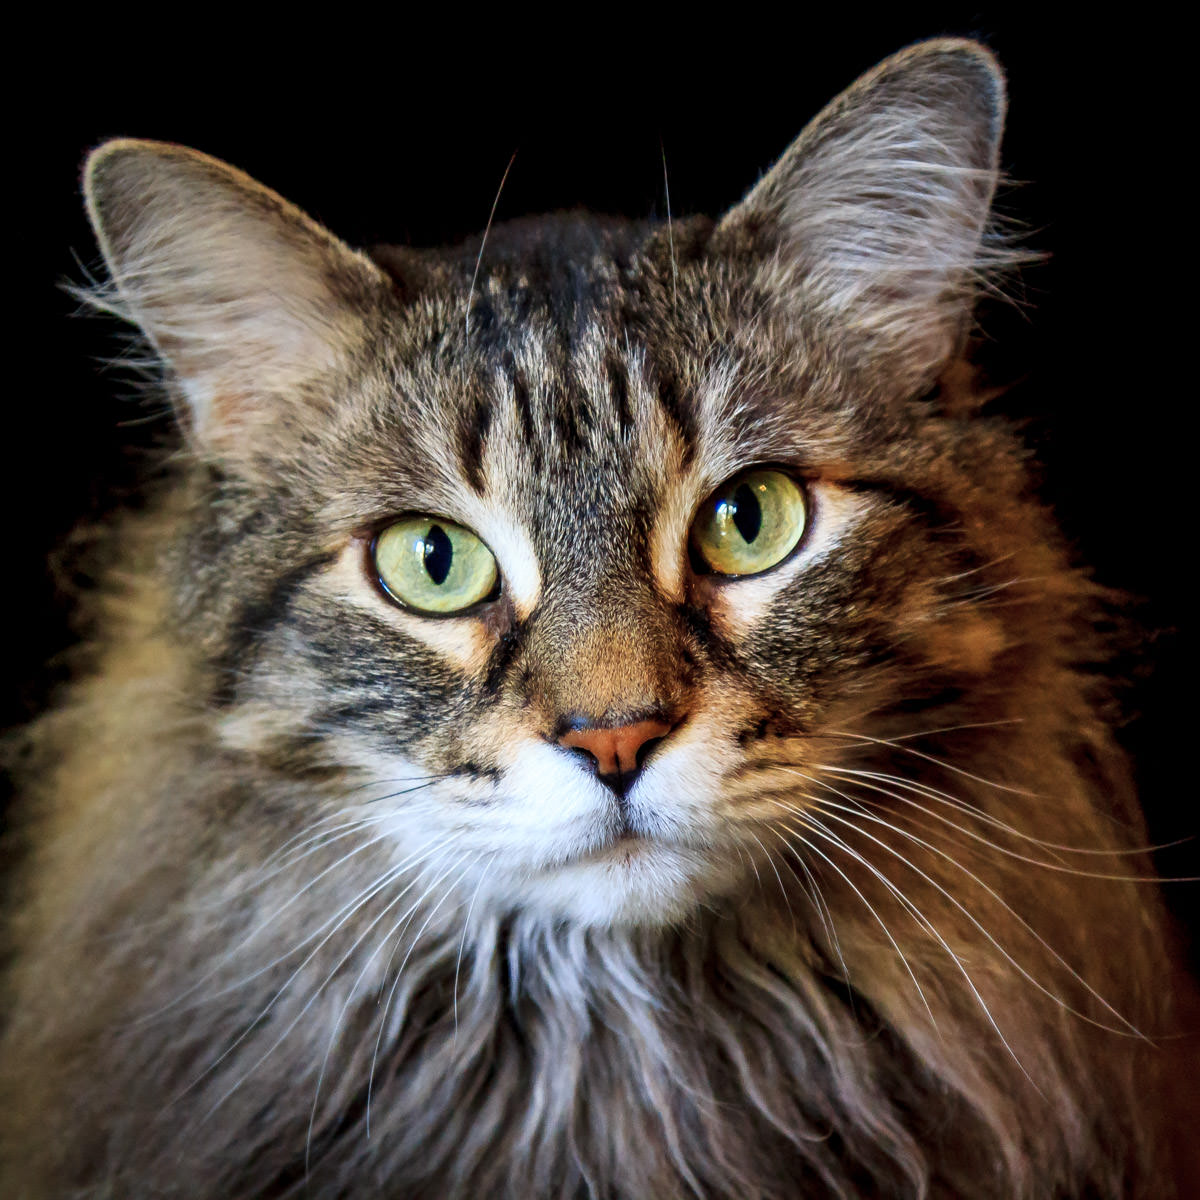 A portrait of one of our Maine Coon cats, Squeaky.